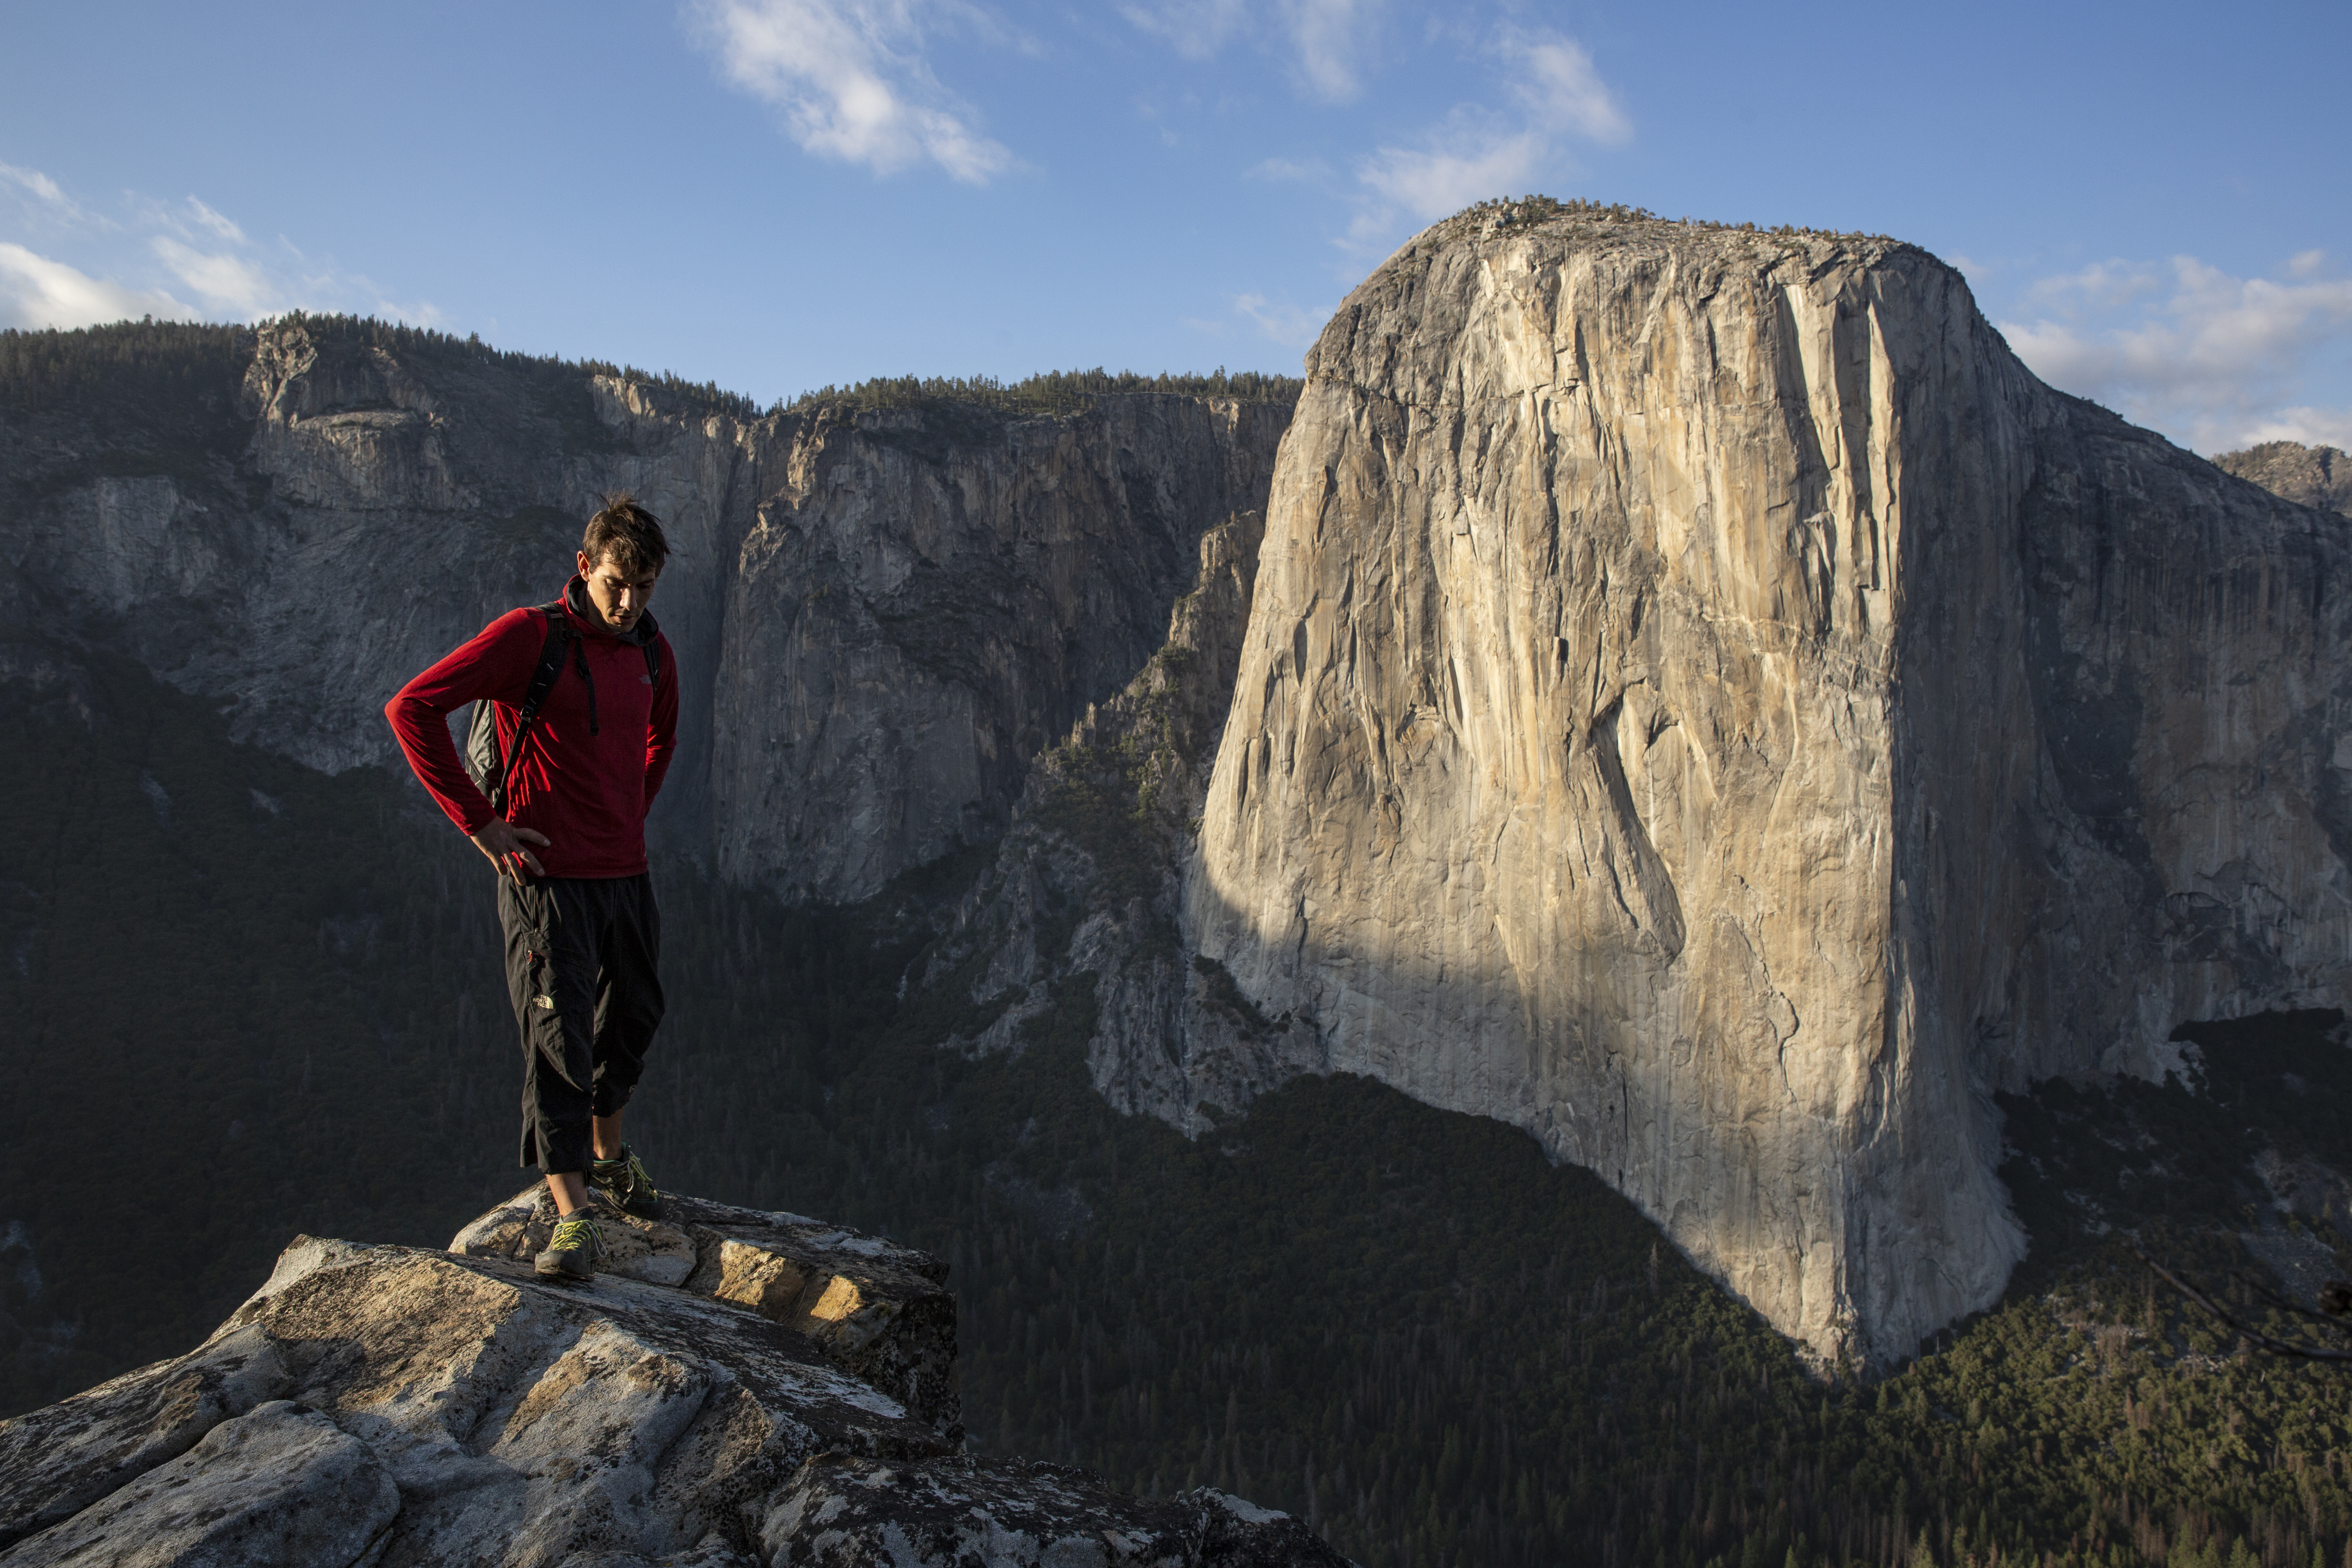 Alex Honnold atop Lower Cathedral with El Capitan in the background, Yosemite National Park, CA. (National Geographic/Samuel Crossley)